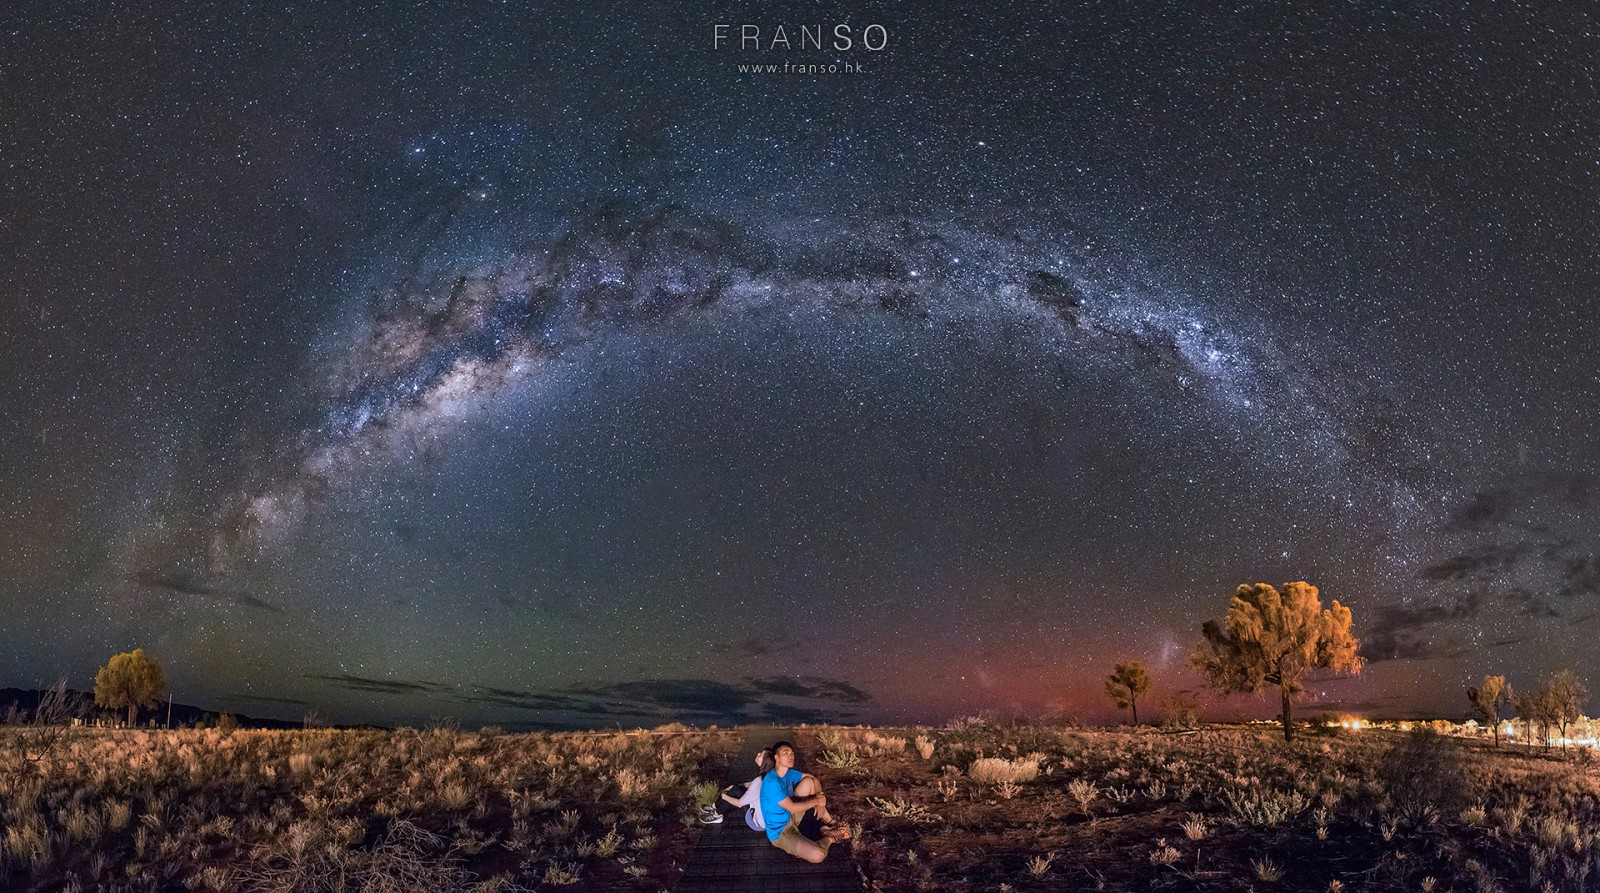 Starscape and Milkyway | Australia | The Arch of the Milkyway  | Kings Canyon, NT, Australia